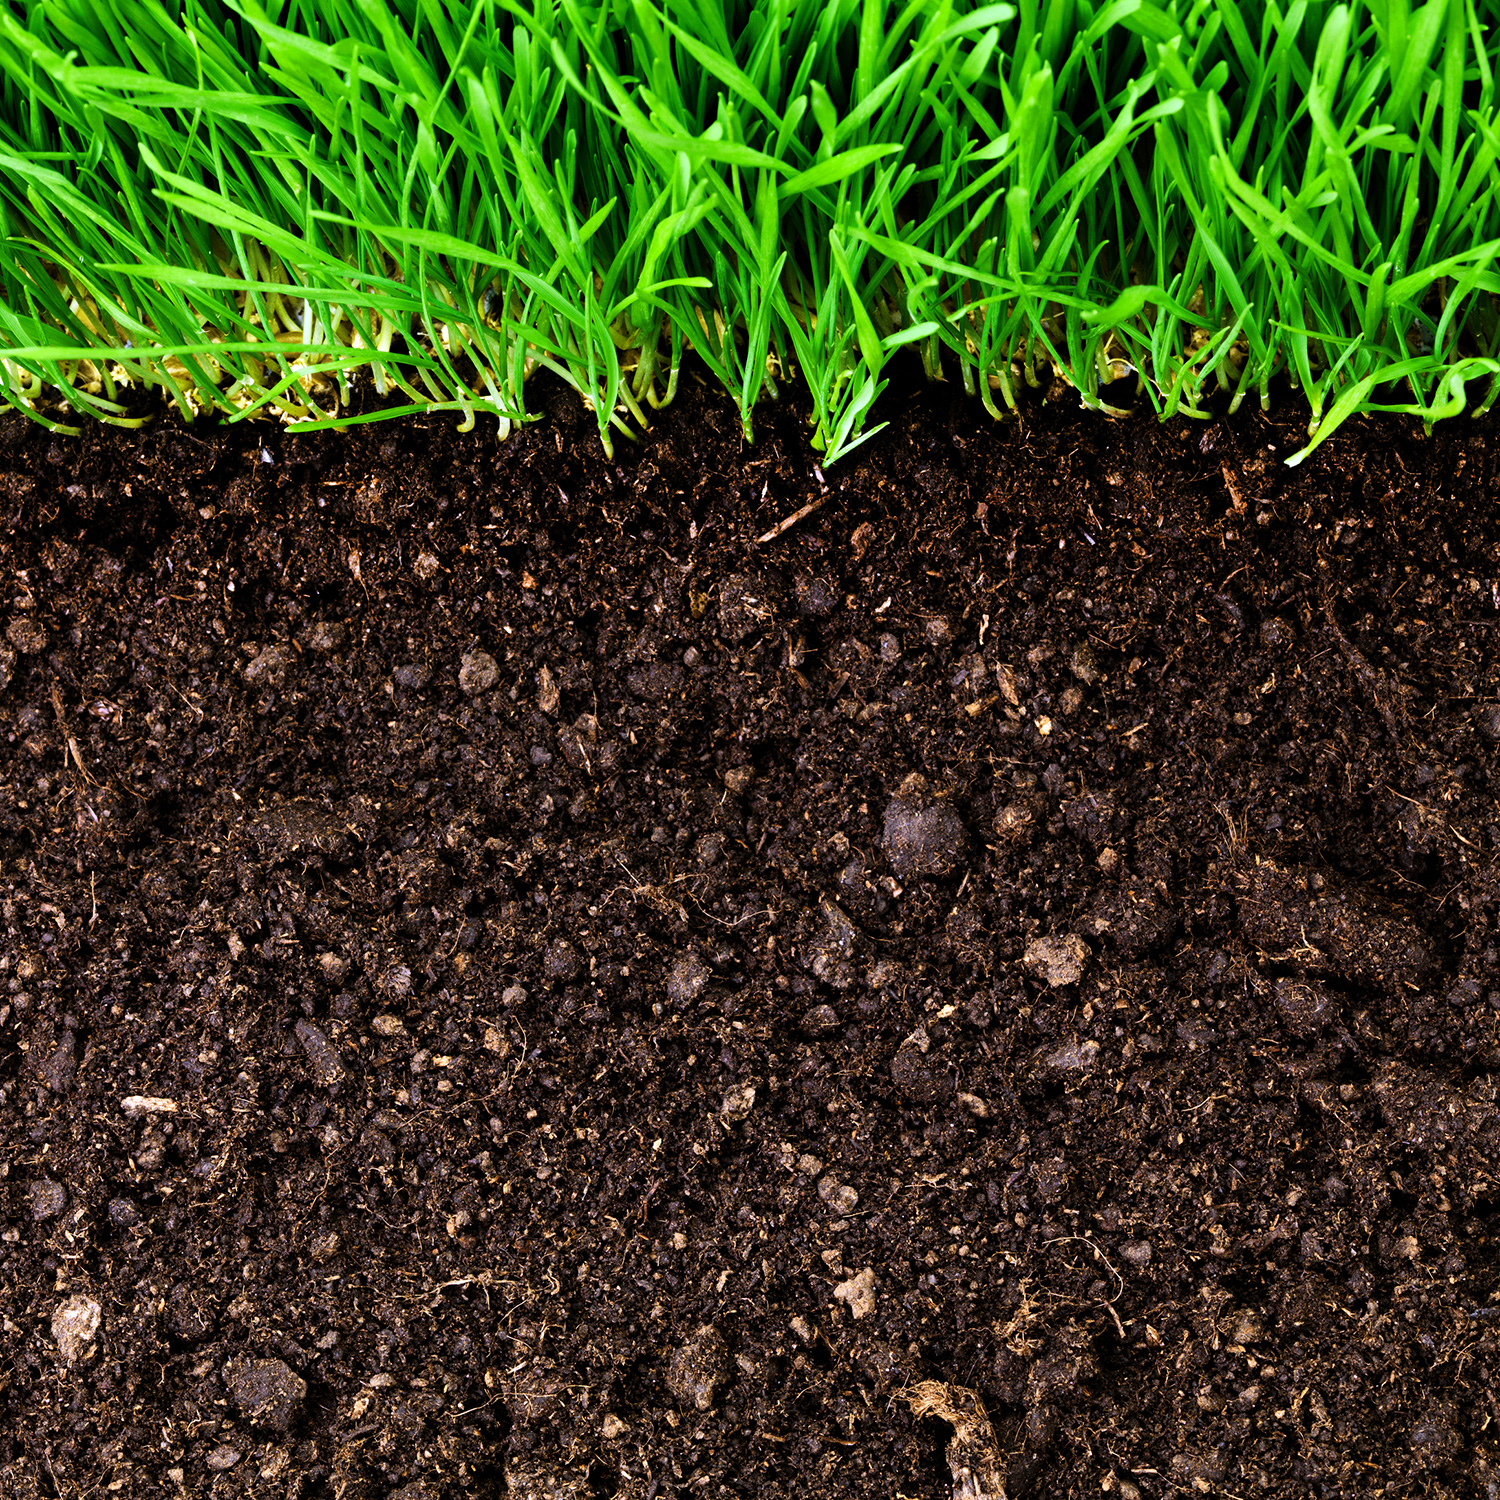 Emerging land use practices rapidly increase soil organic for Three uses of soil